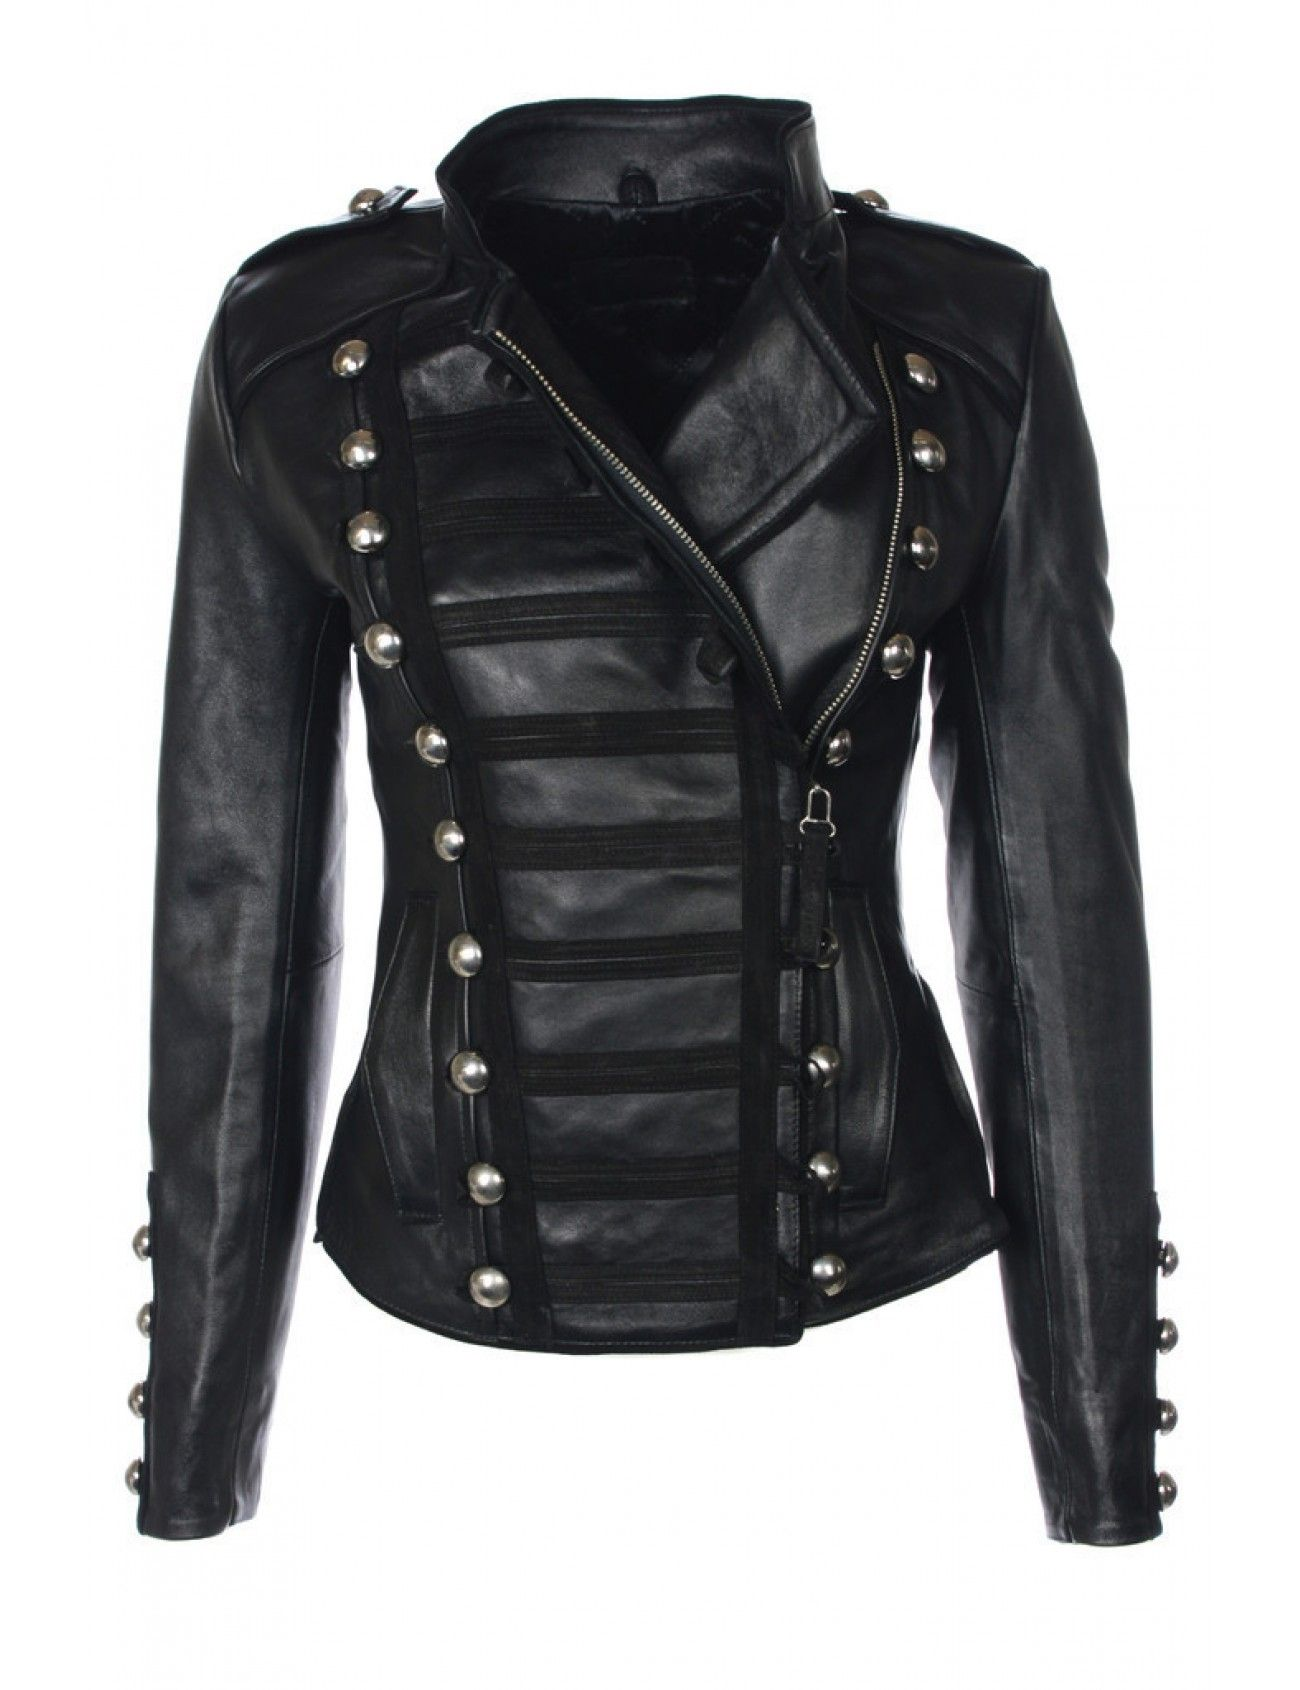 Military Leather jackets and Leather on Pinterest